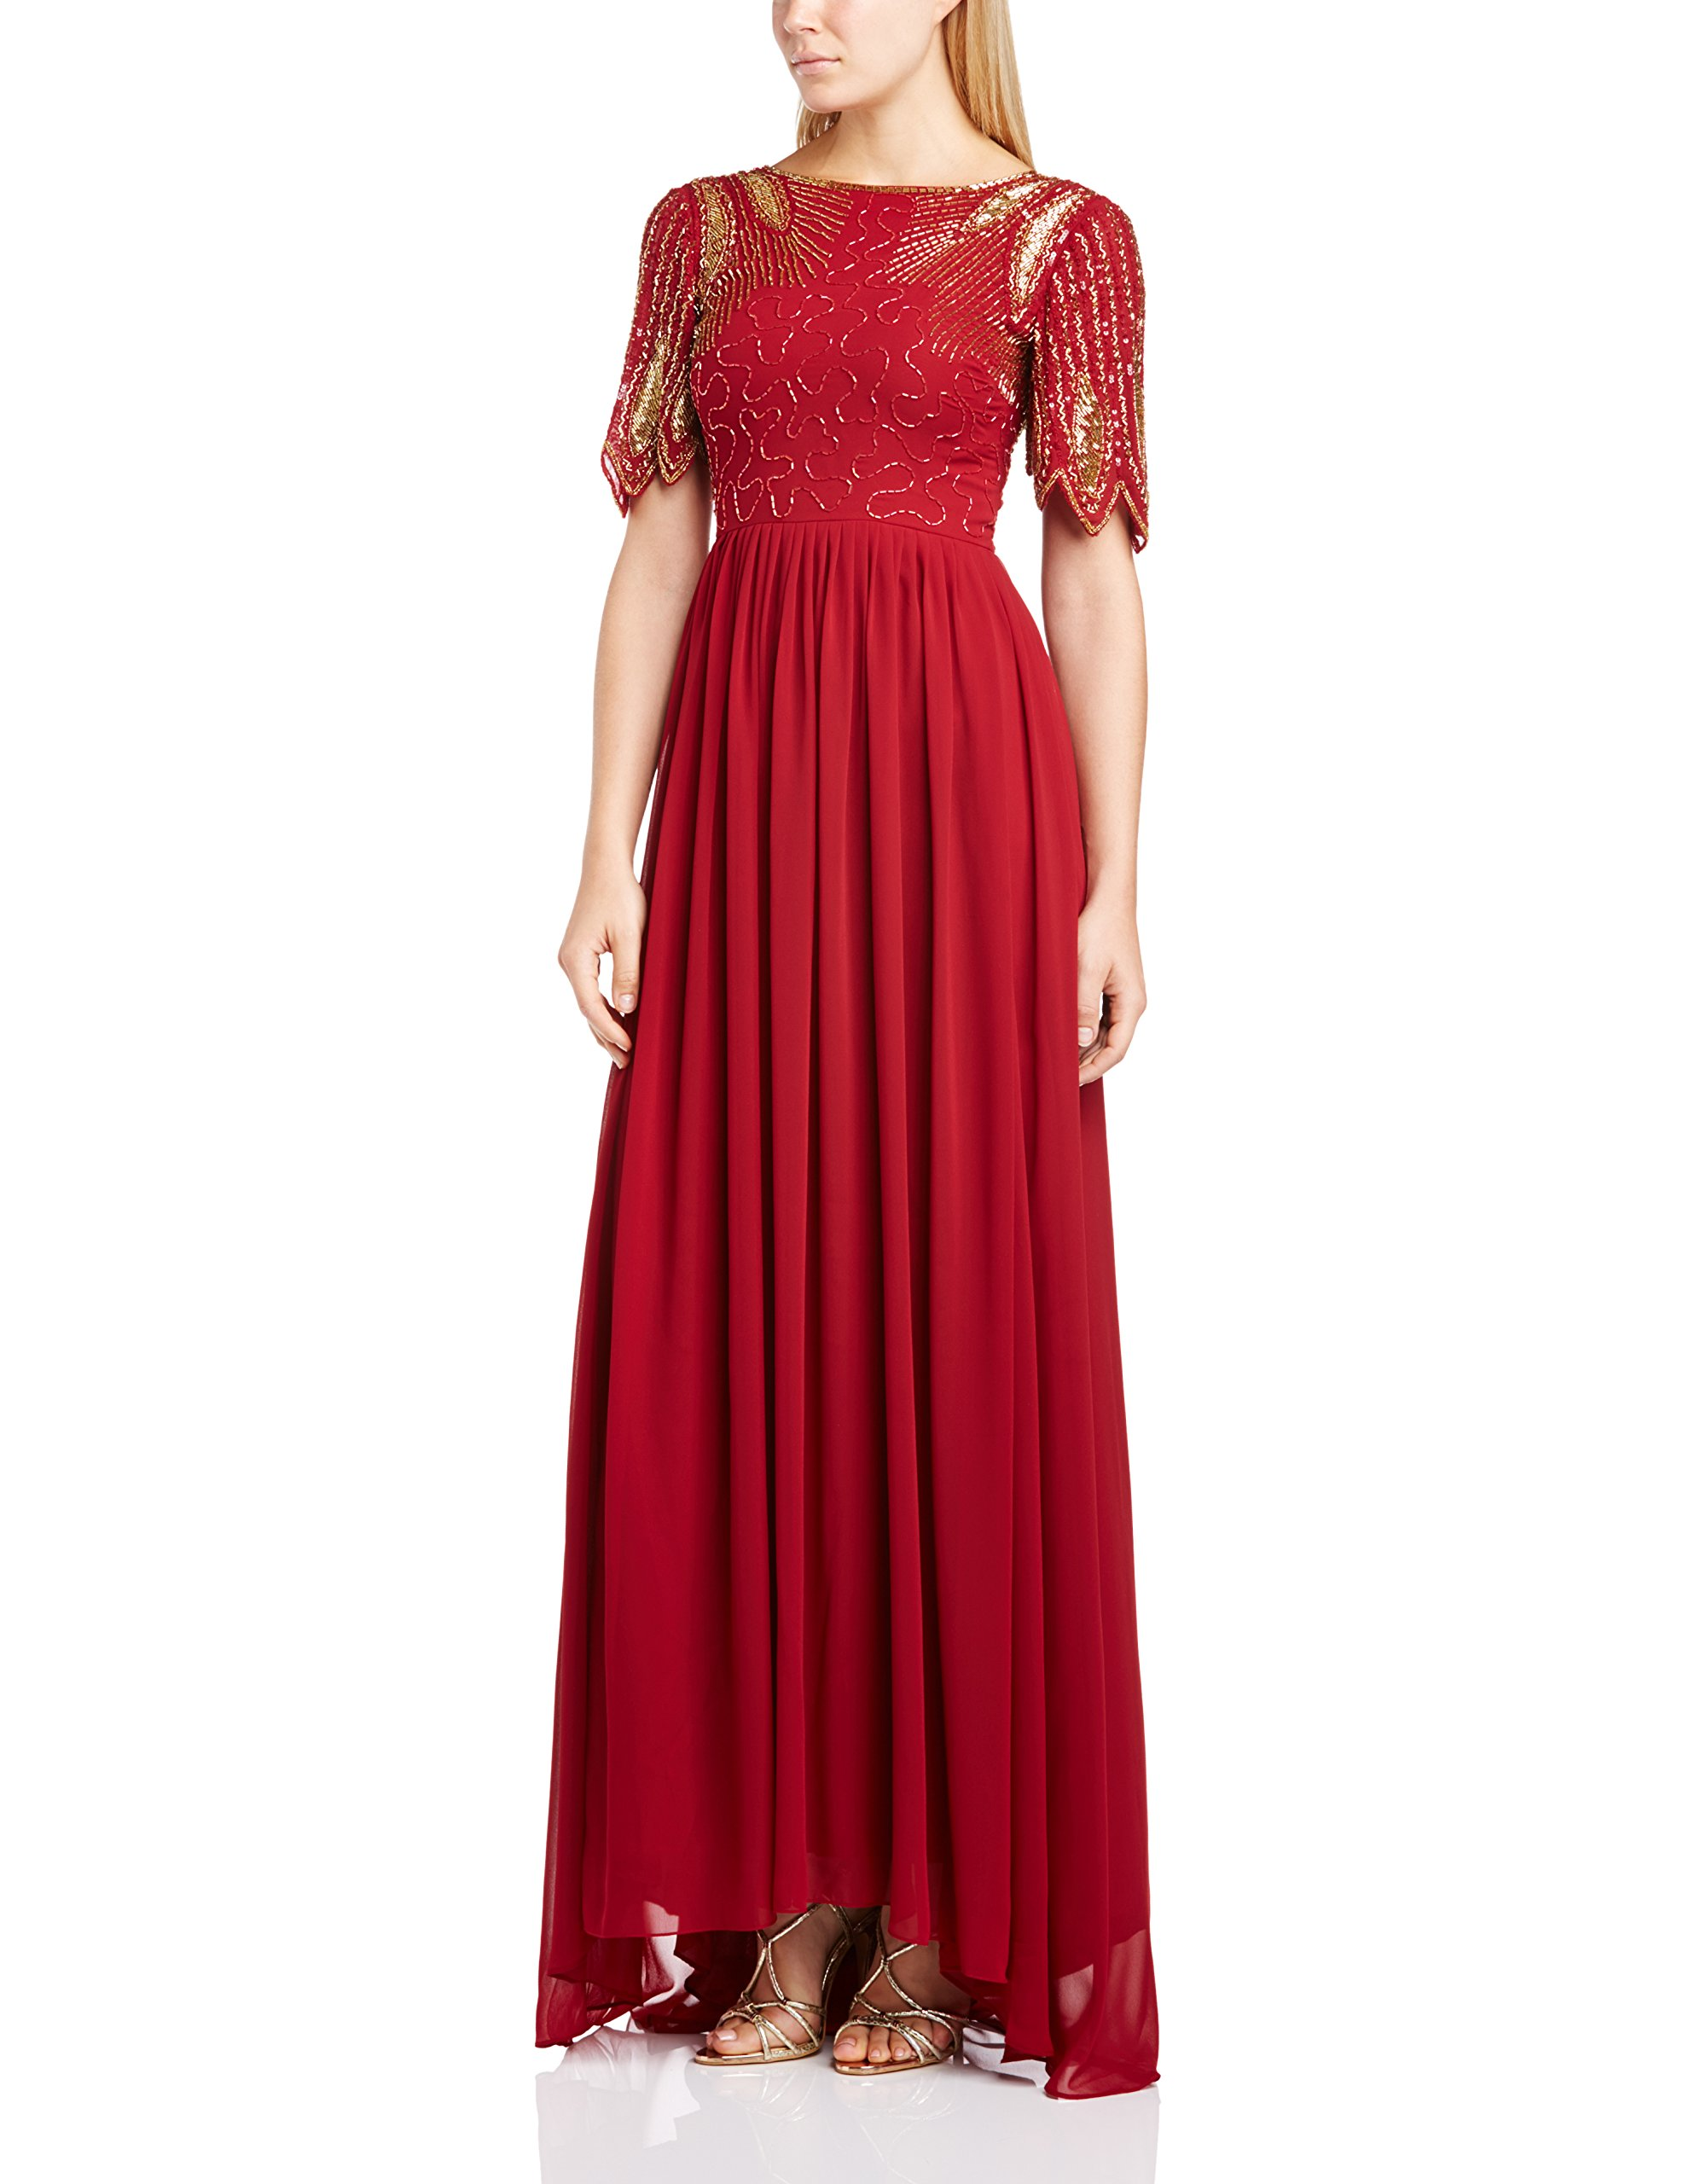 Maxi RobeRougewine Virgos Lounge Lena red38 Femme fy6gvIY7bm